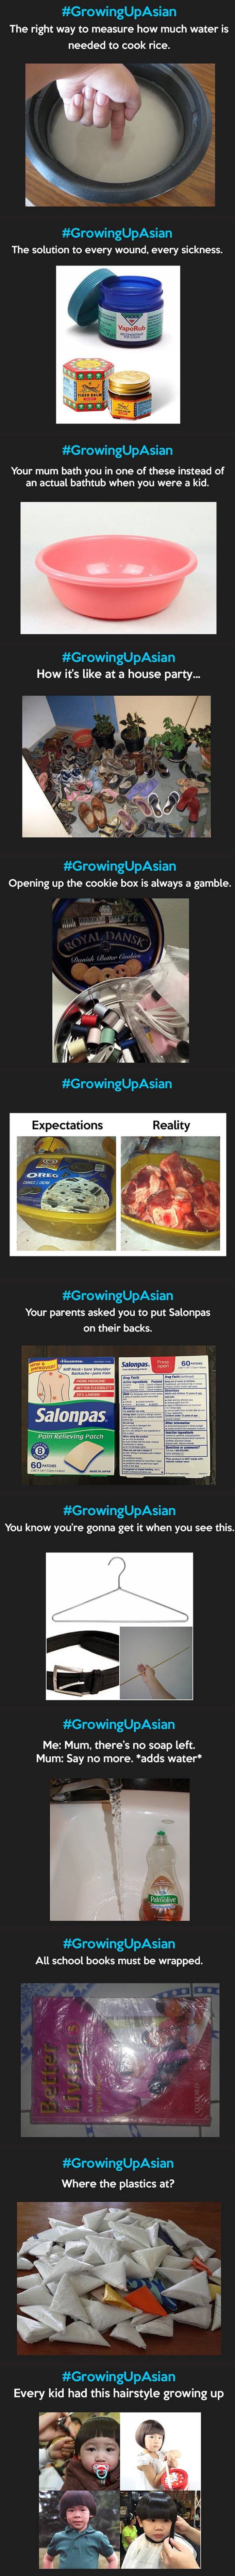 If you can relate to any of these, congrats you're asian!